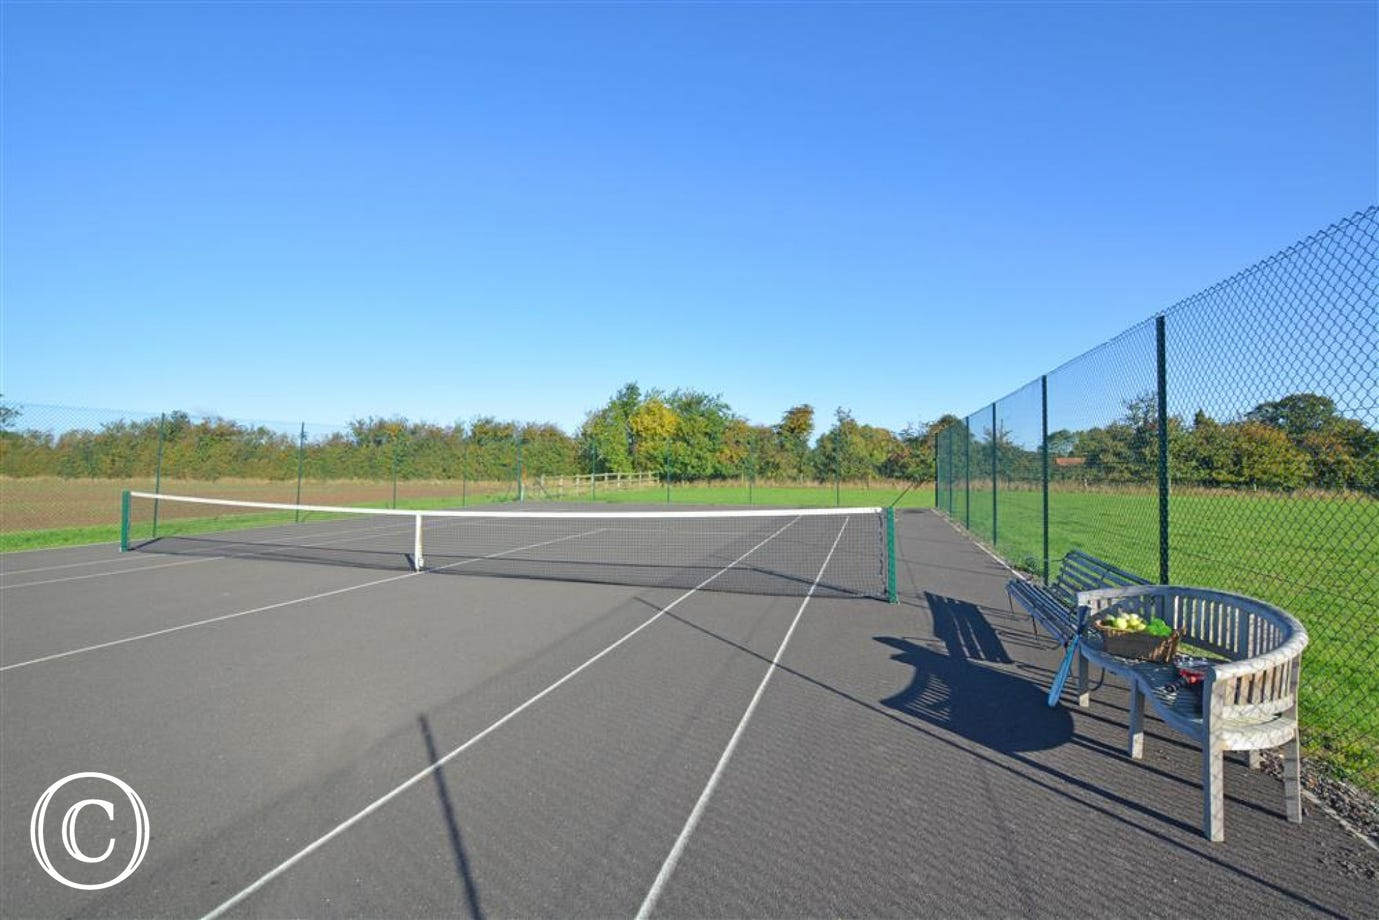 Tennis Court View 2